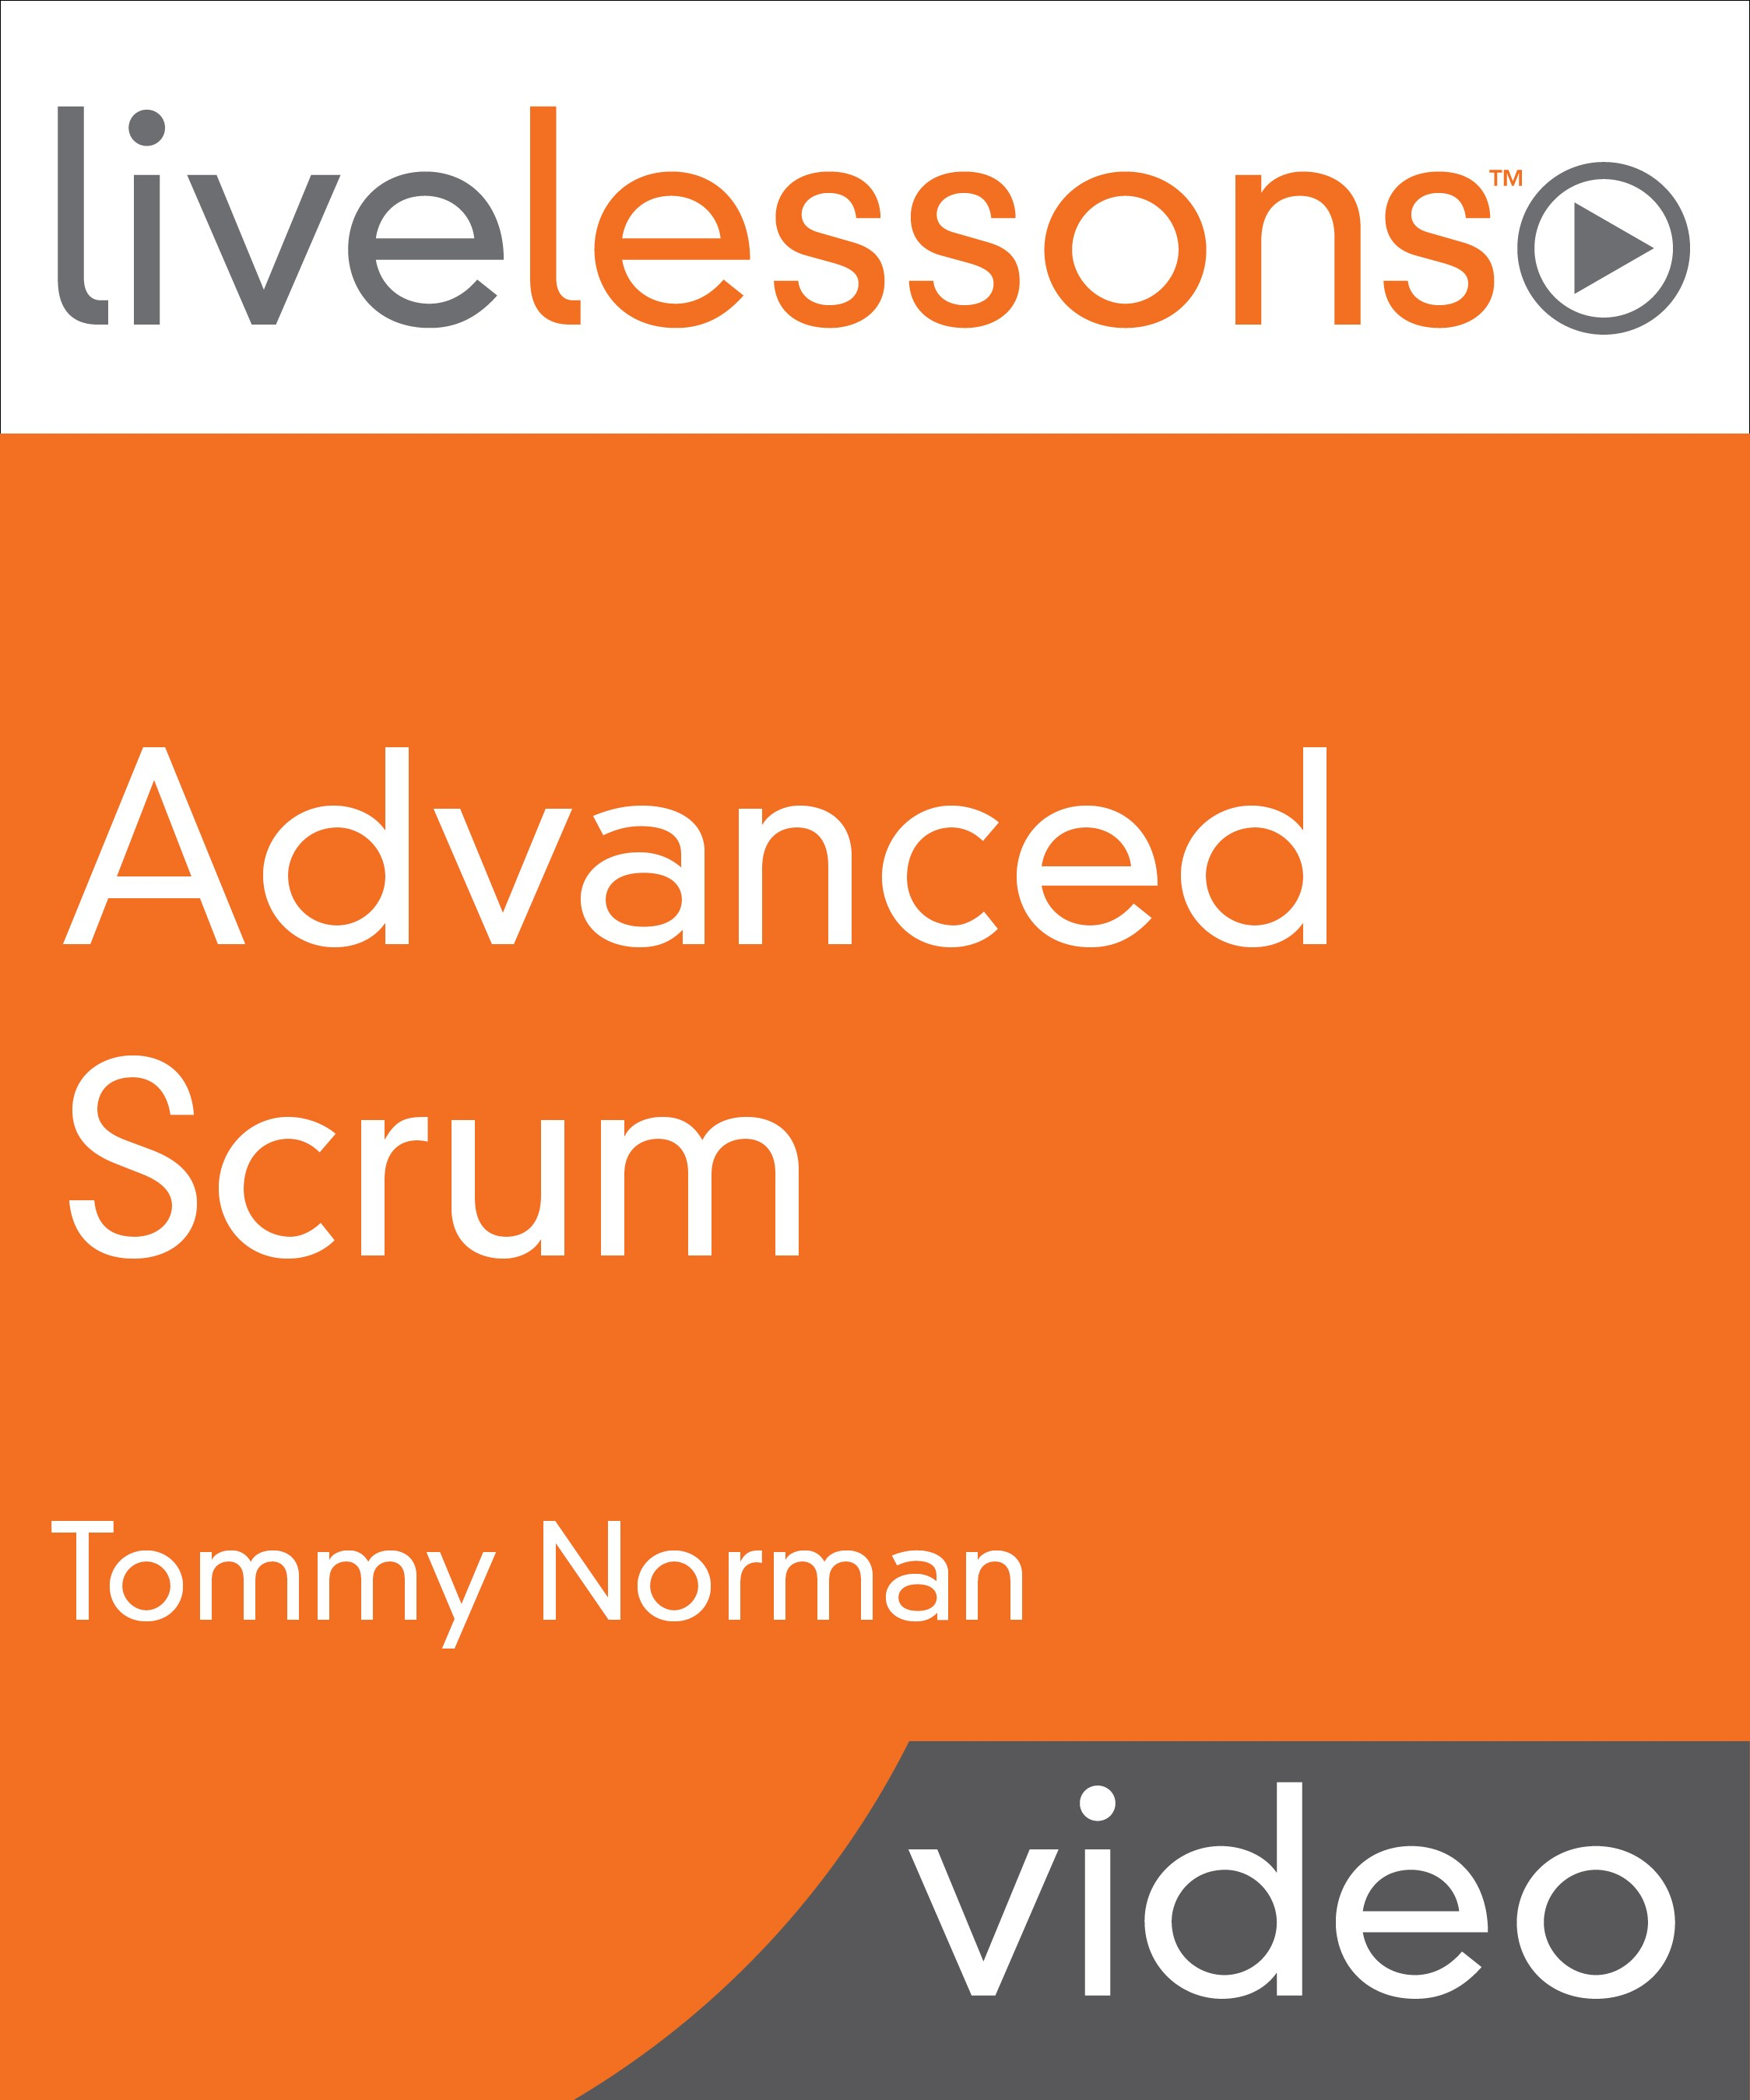 Advanced Scrum LiveLessons